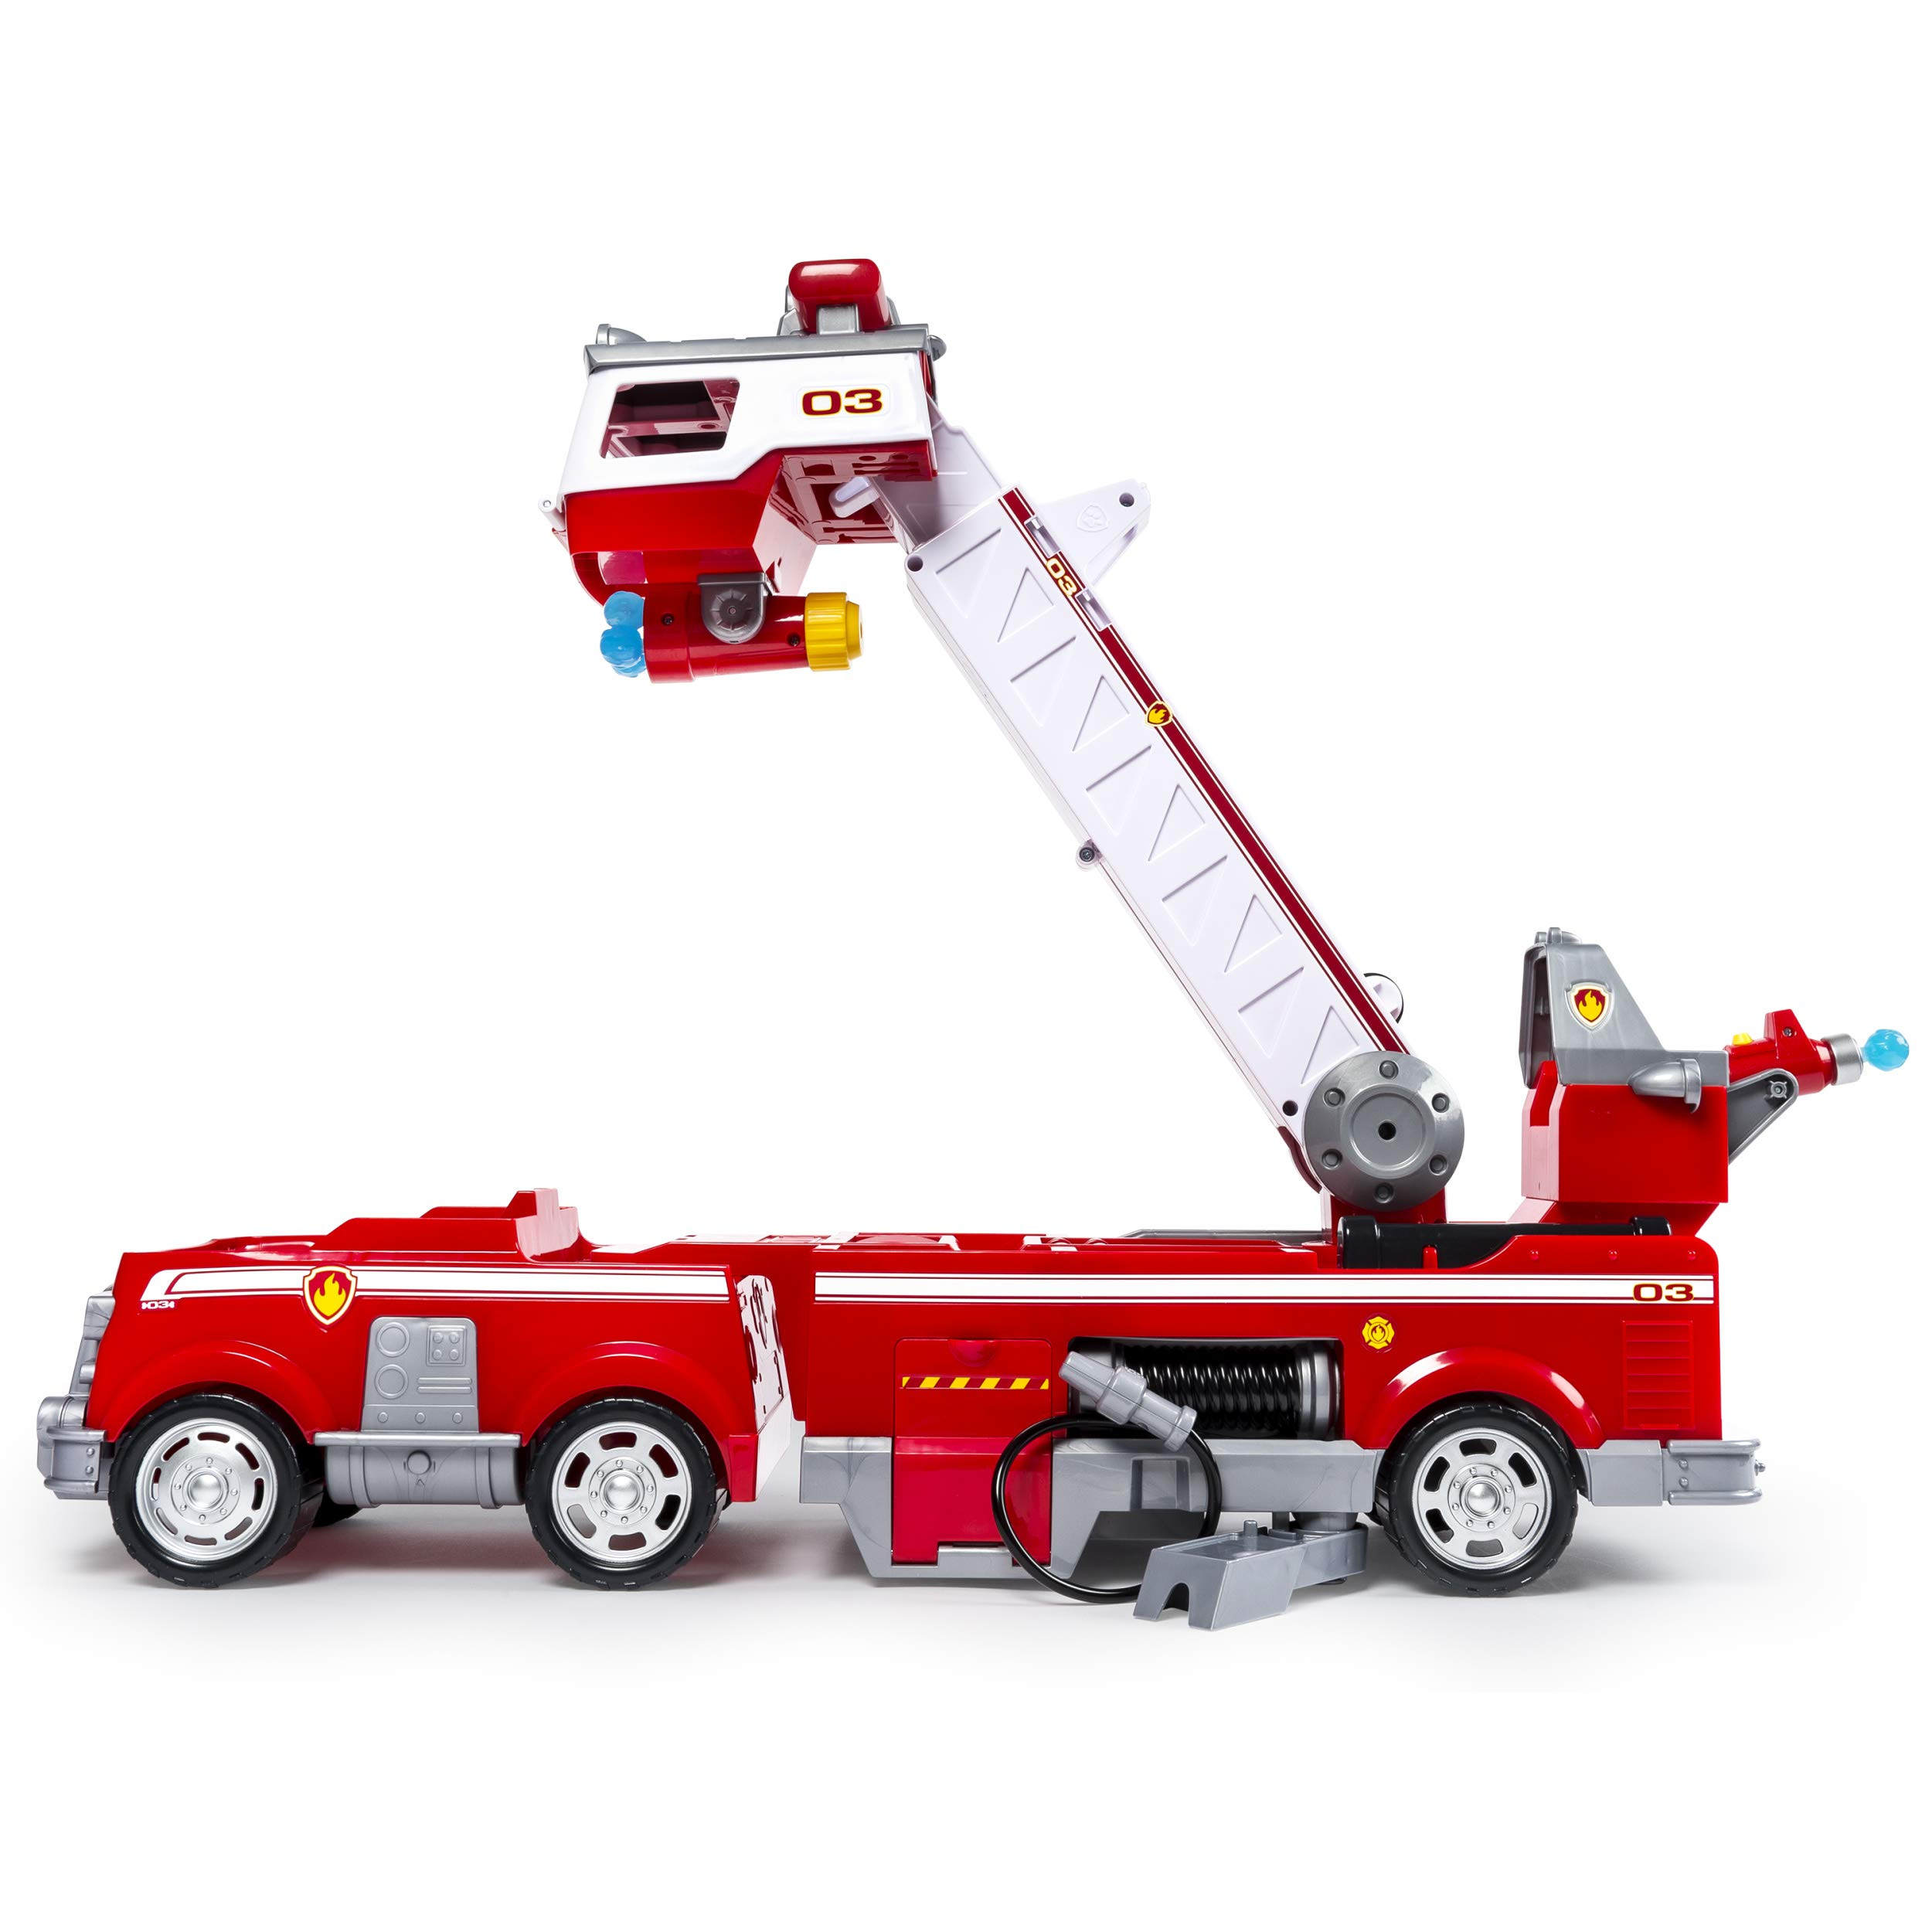 PAW Patrol - Ultimate Rescue Fire Truck with Extendable 2 ft. Tall Ladder, for Ages 3 and Up by Paw Patrol (Image #4)